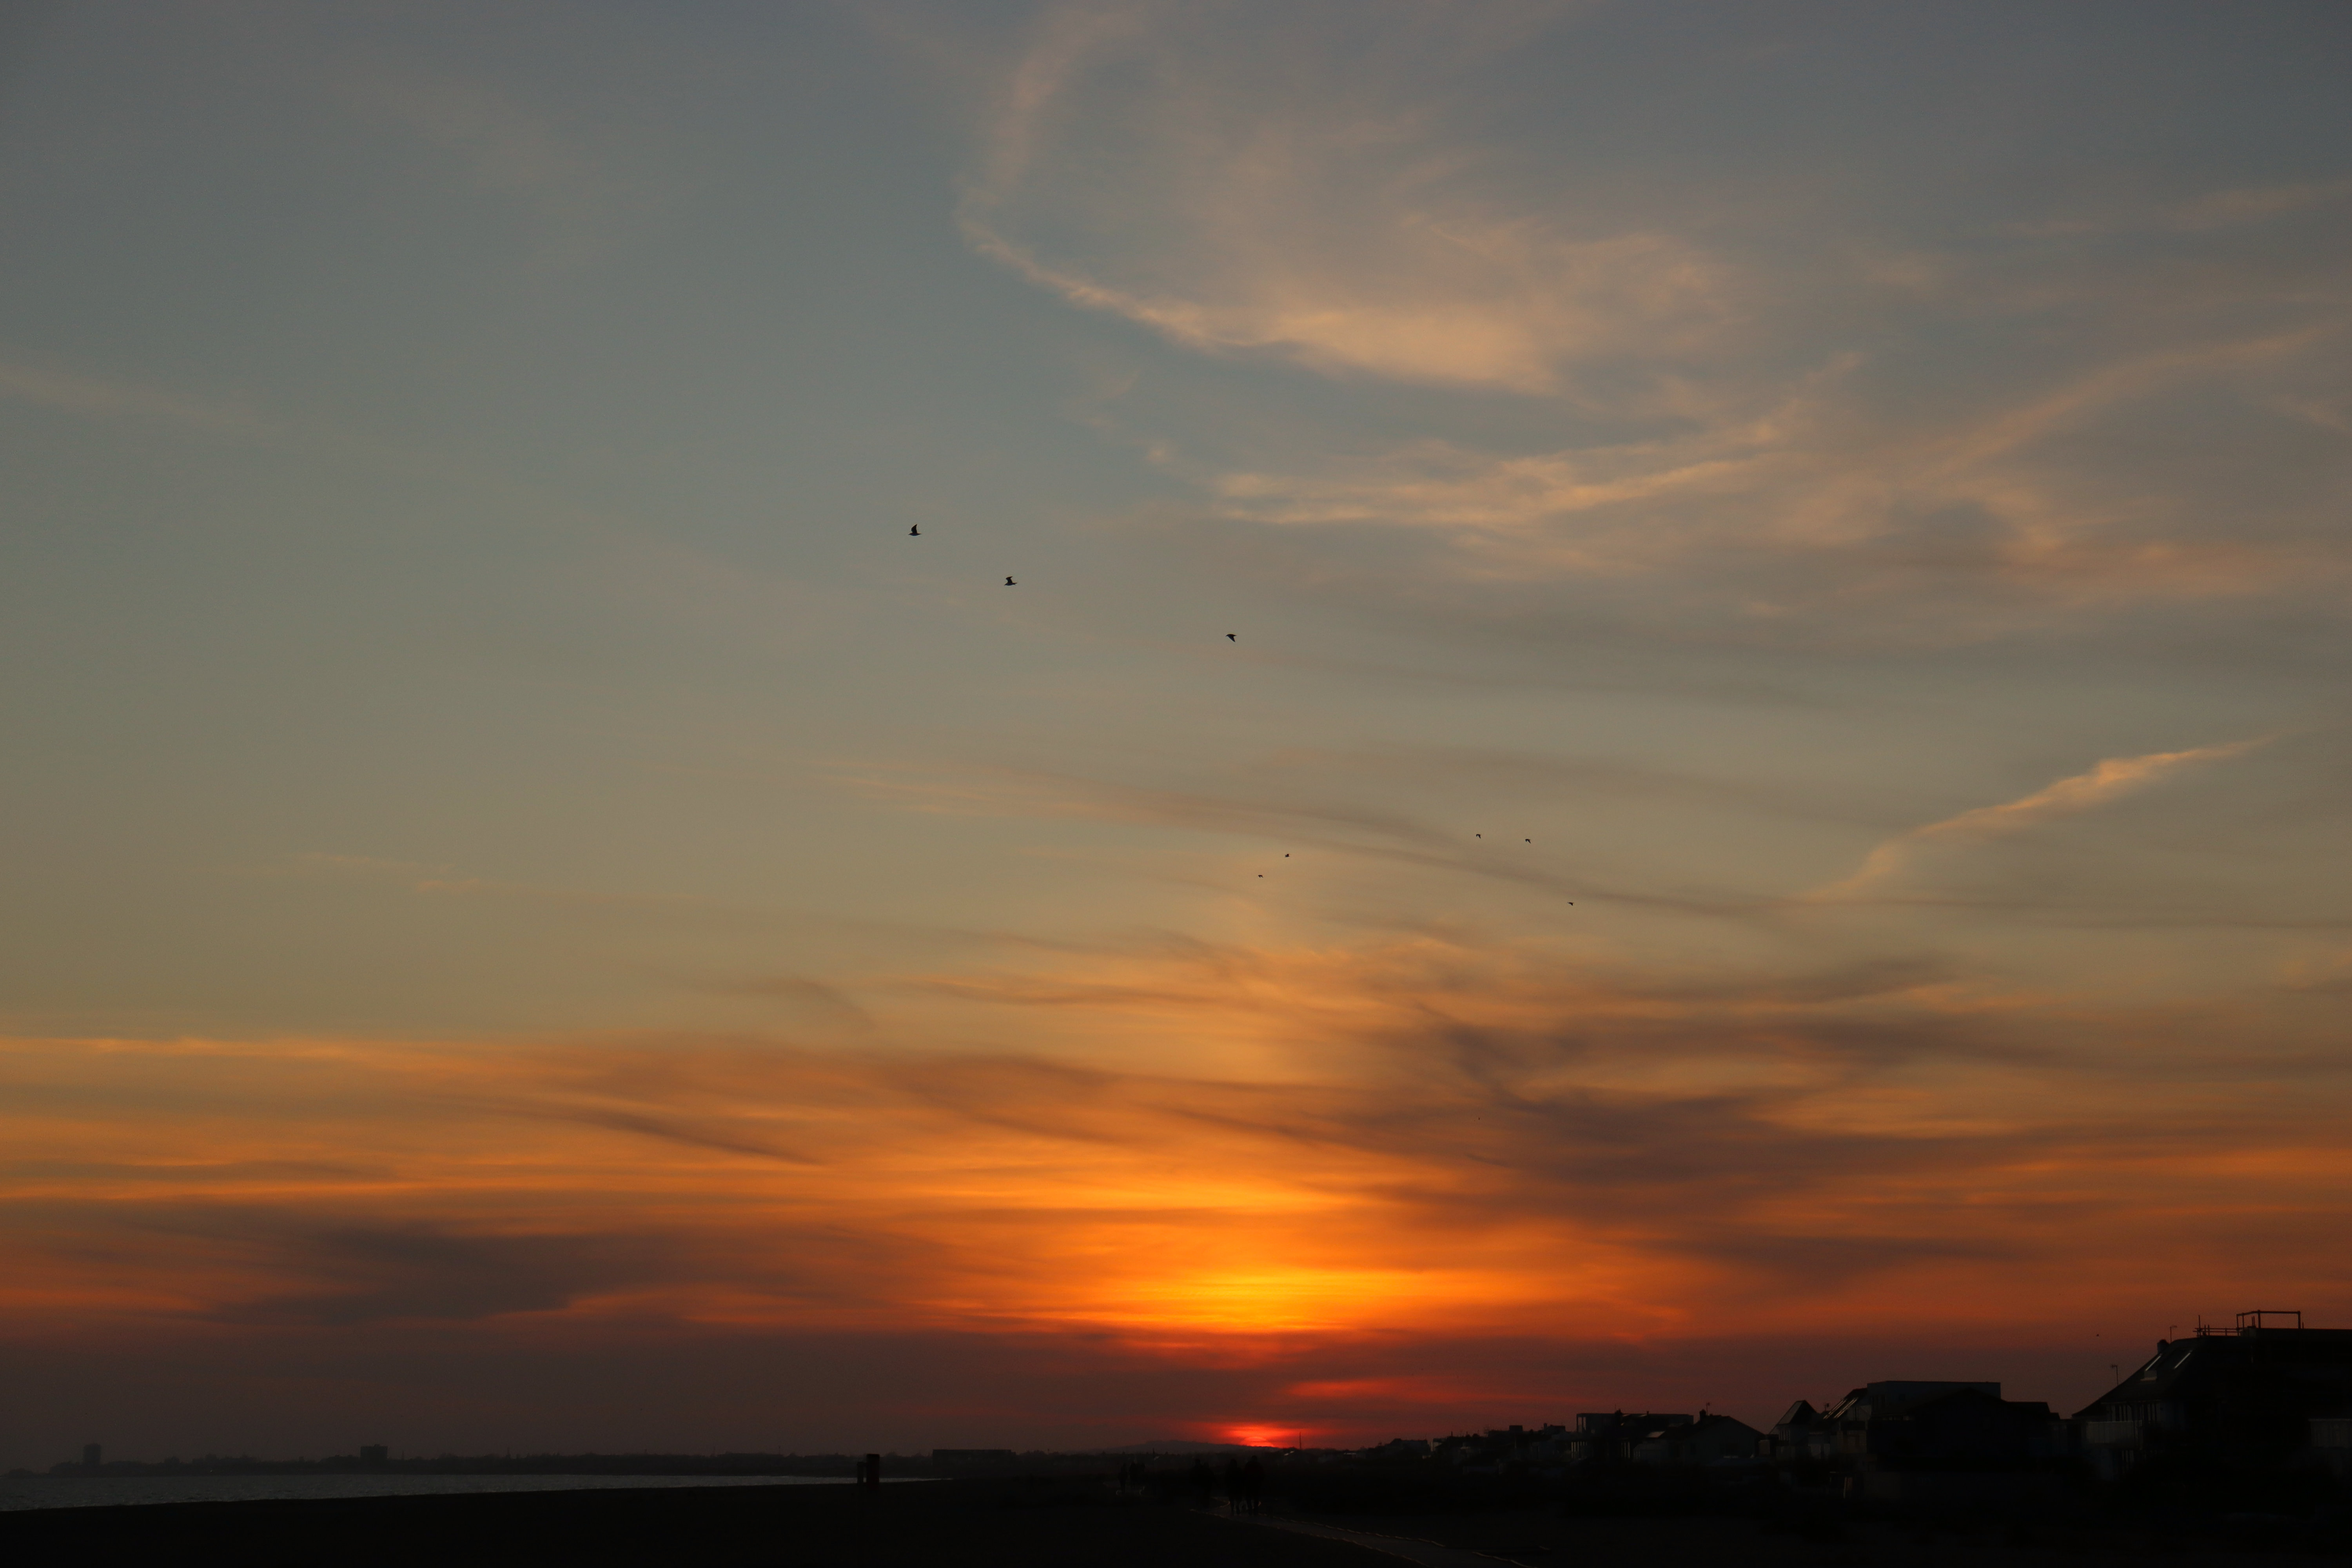 Shoreham beach with a red sunset in the distance and some birds flying between the wavy clouds.